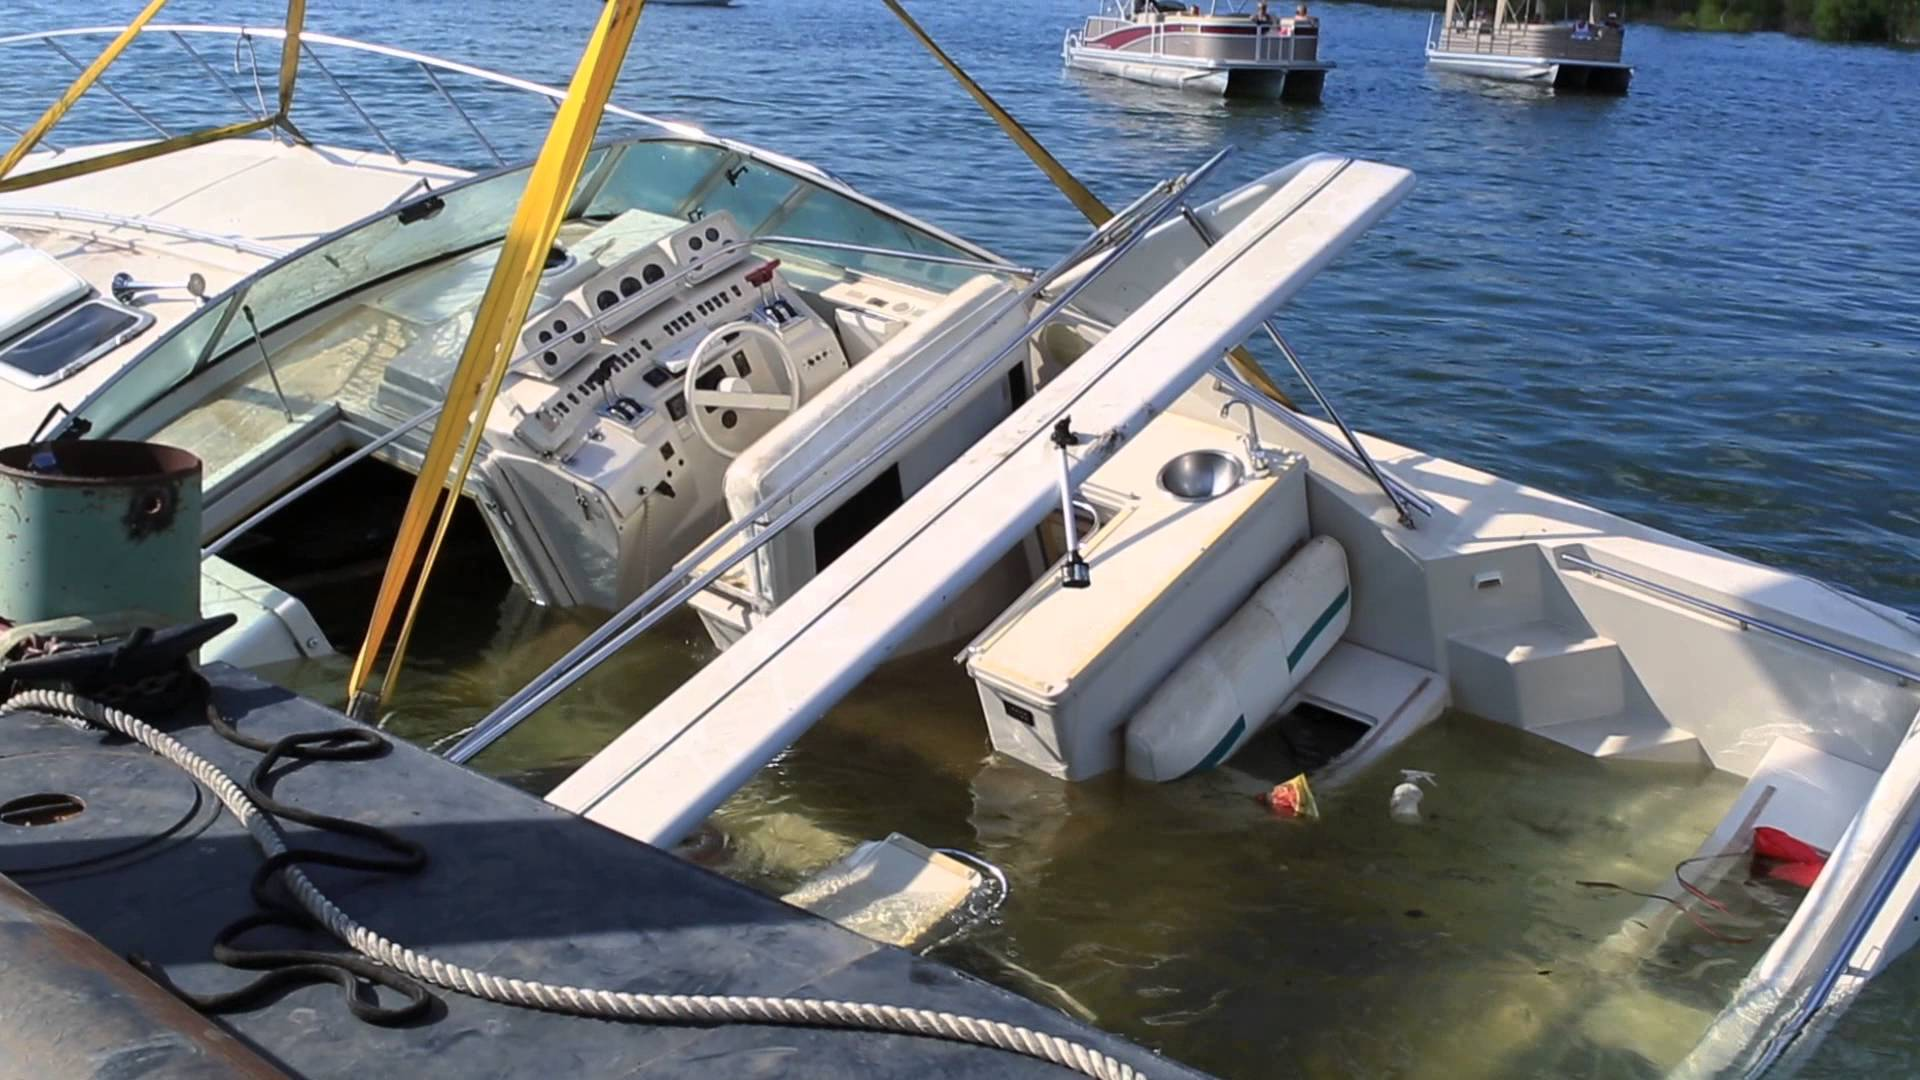 Sunken Boat Recovery: 43ft Cruiser in 150ft deep water - YouTube